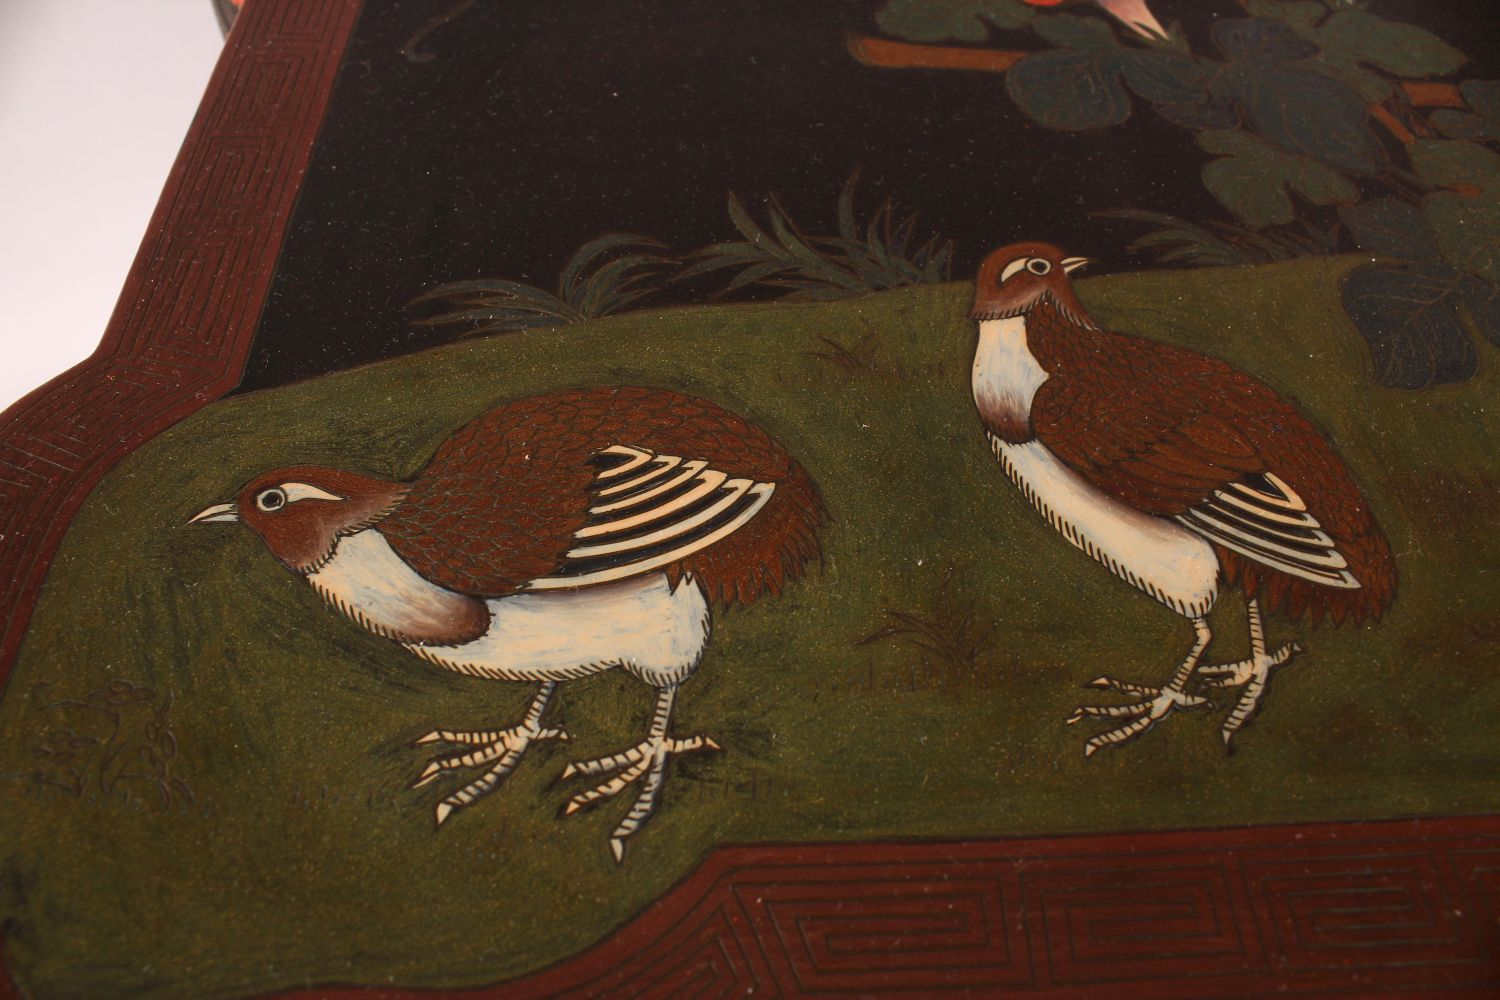 A GOOD CHINESE CARVED WOOD & LACQUER DECORATED LOW TABLE, the top with decoration of quails in - Image 4 of 6